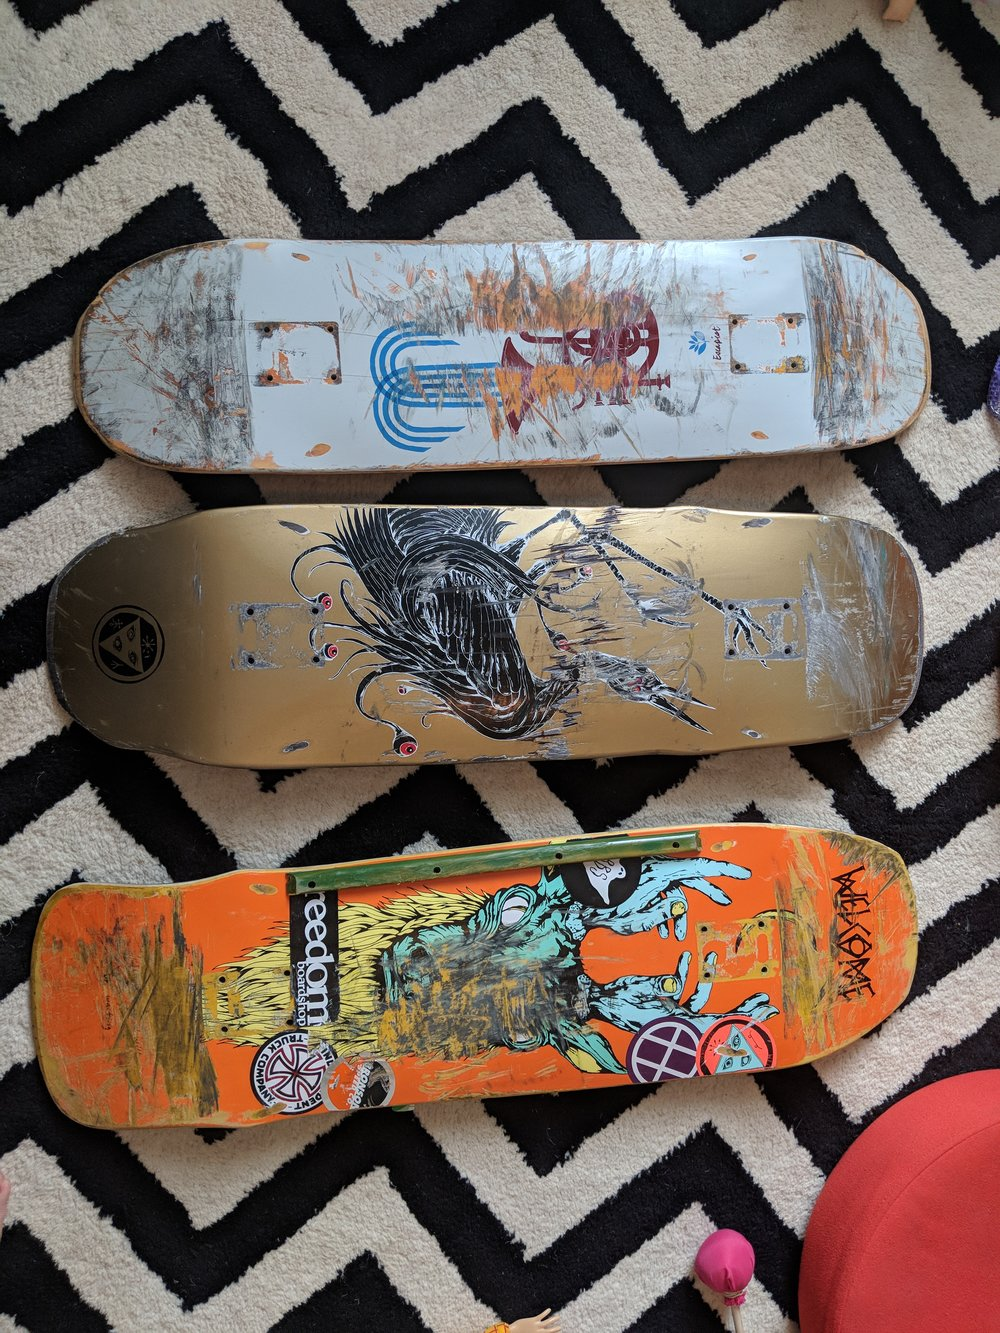 The 3 random skateboards I was sent.